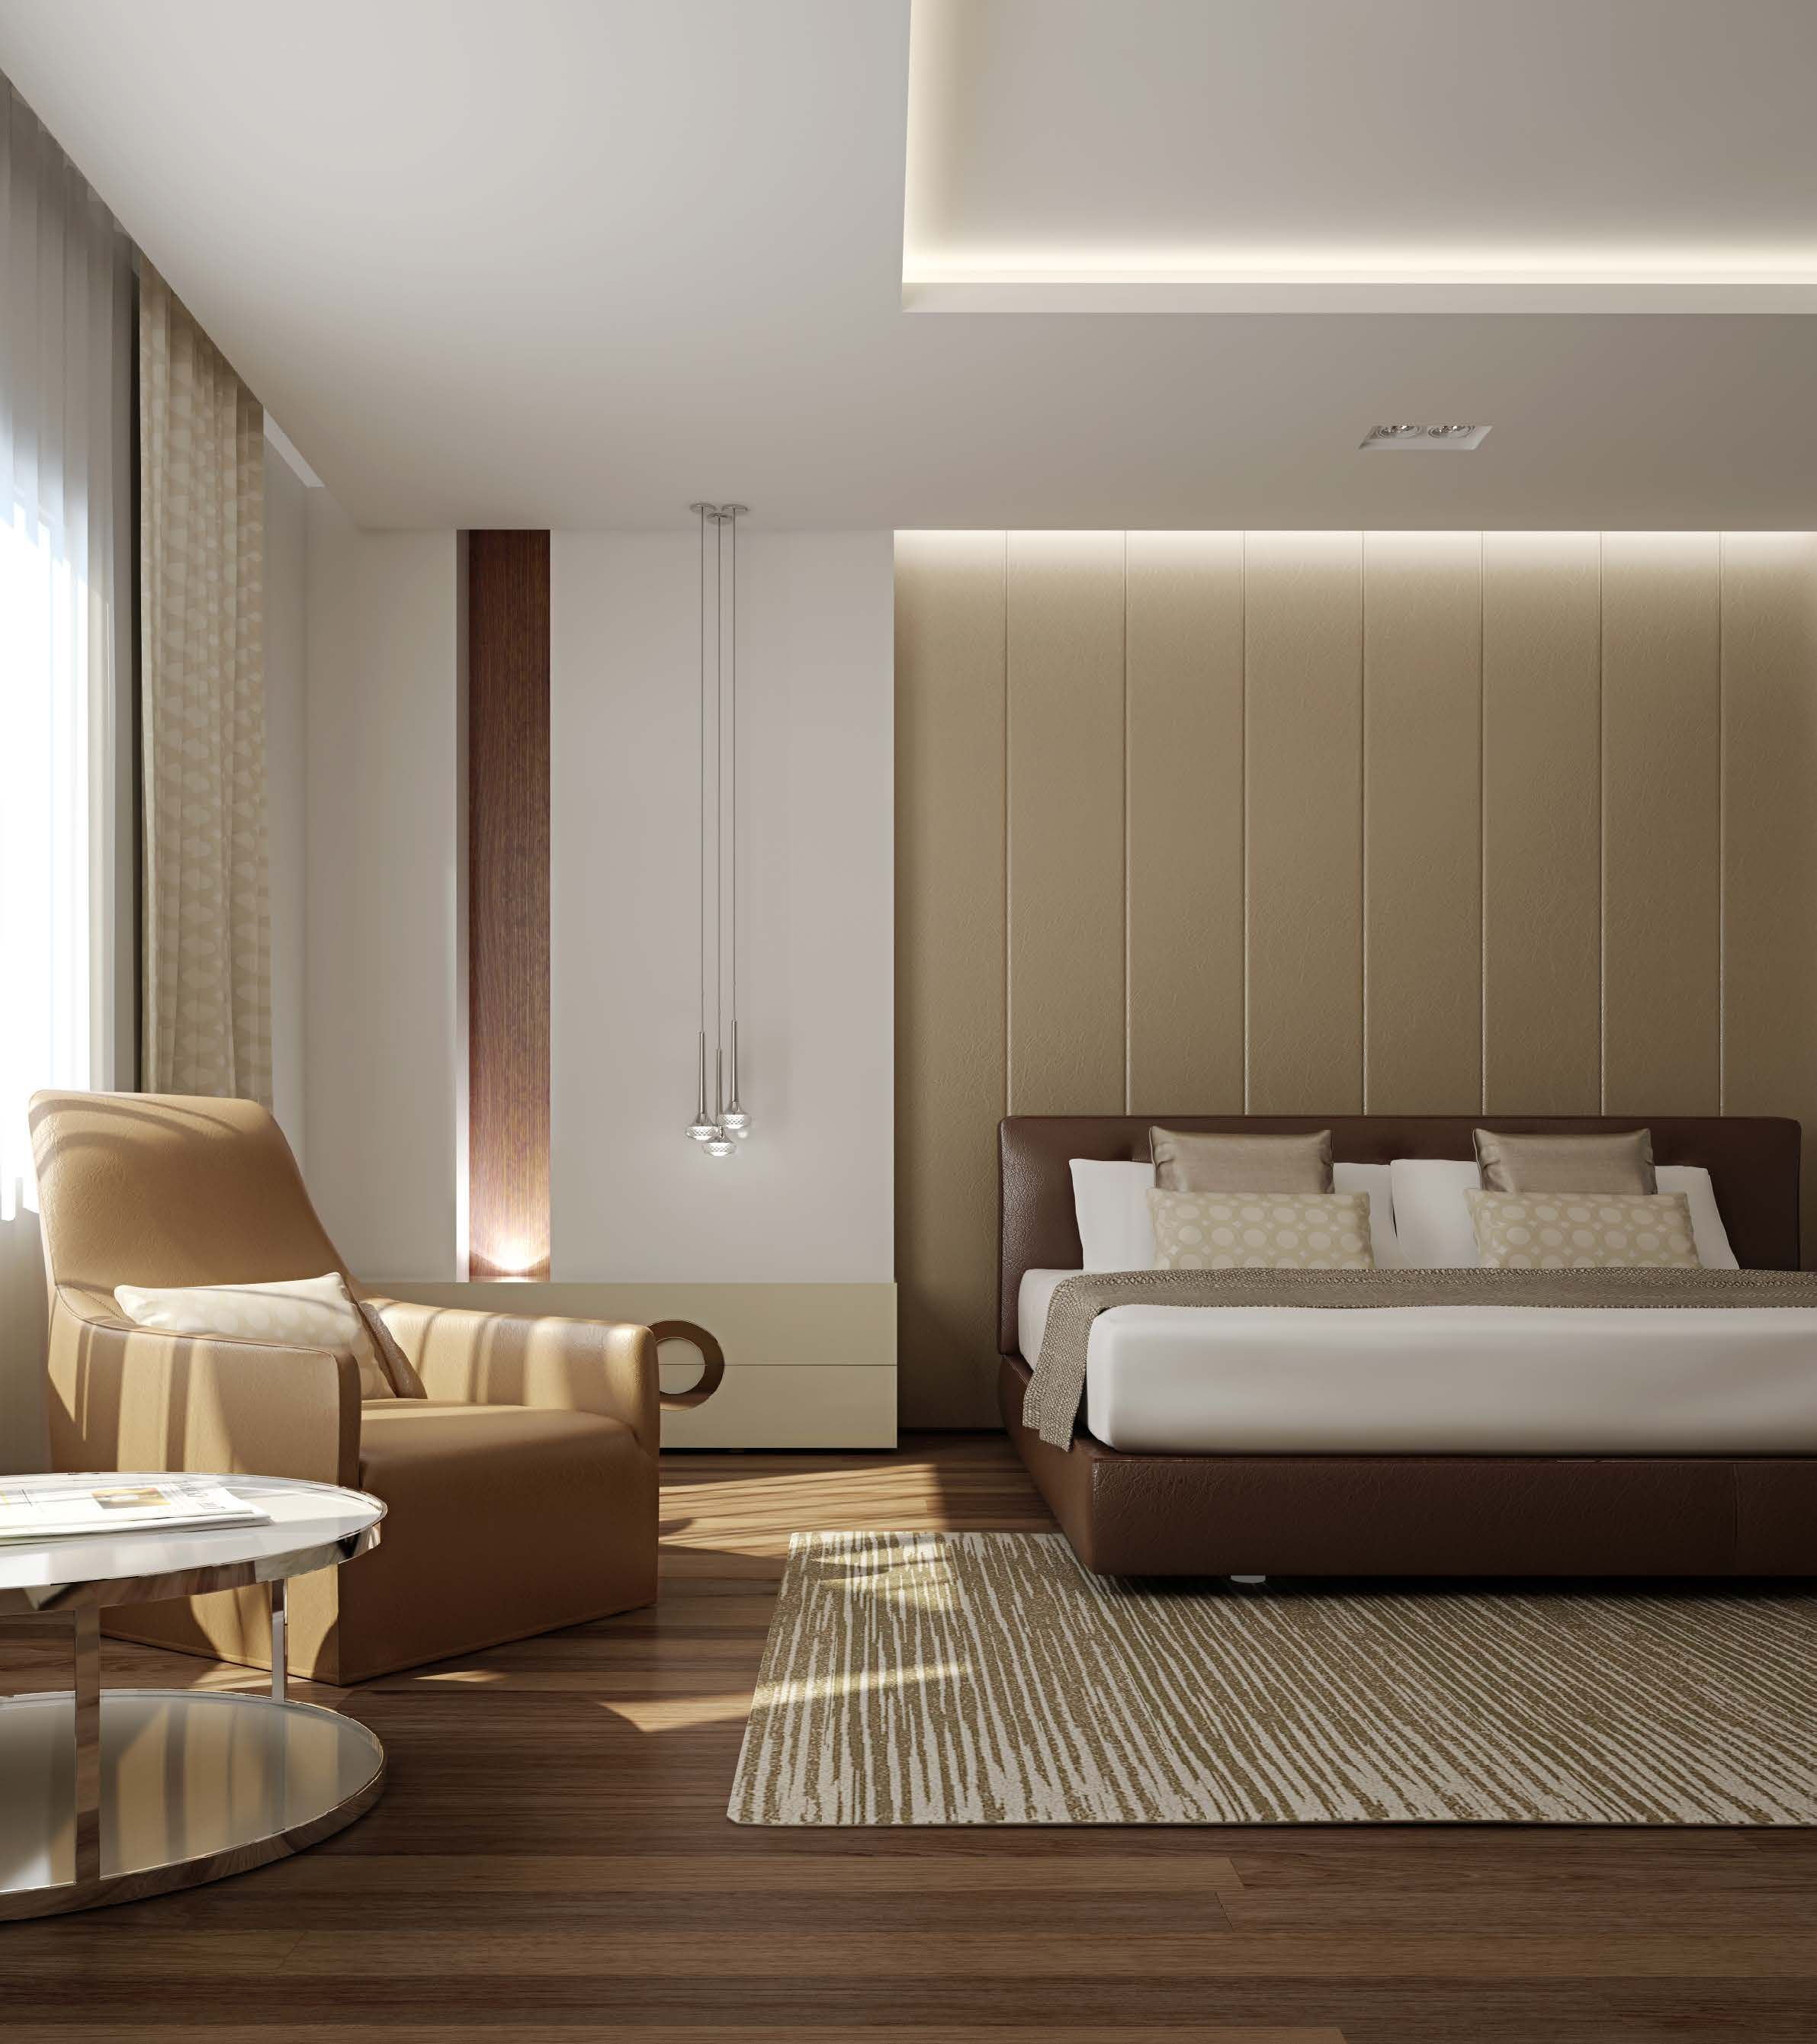 Bedroom Ceiling Interior Mimar Interiors 8a Pinterest Interiors Bedrooms And